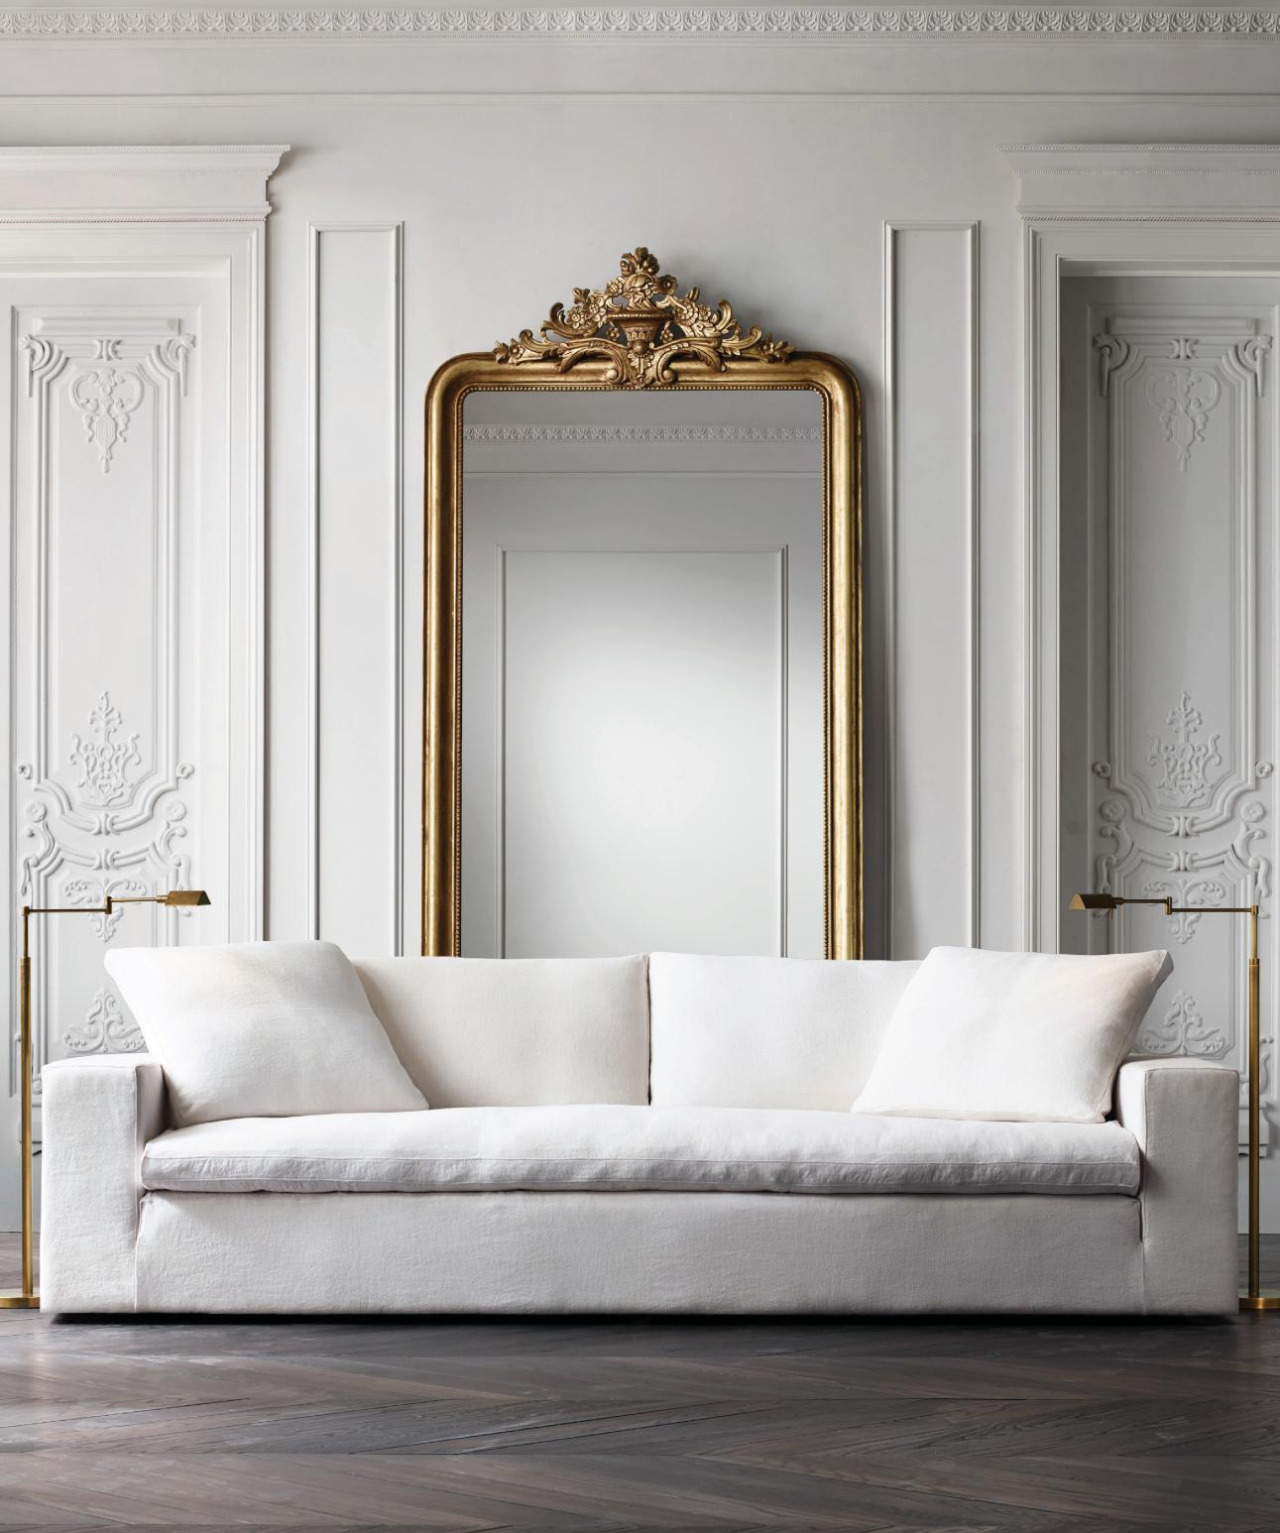 design mirrors for living rooms stunning wall mirror designs for your living room decor 22131